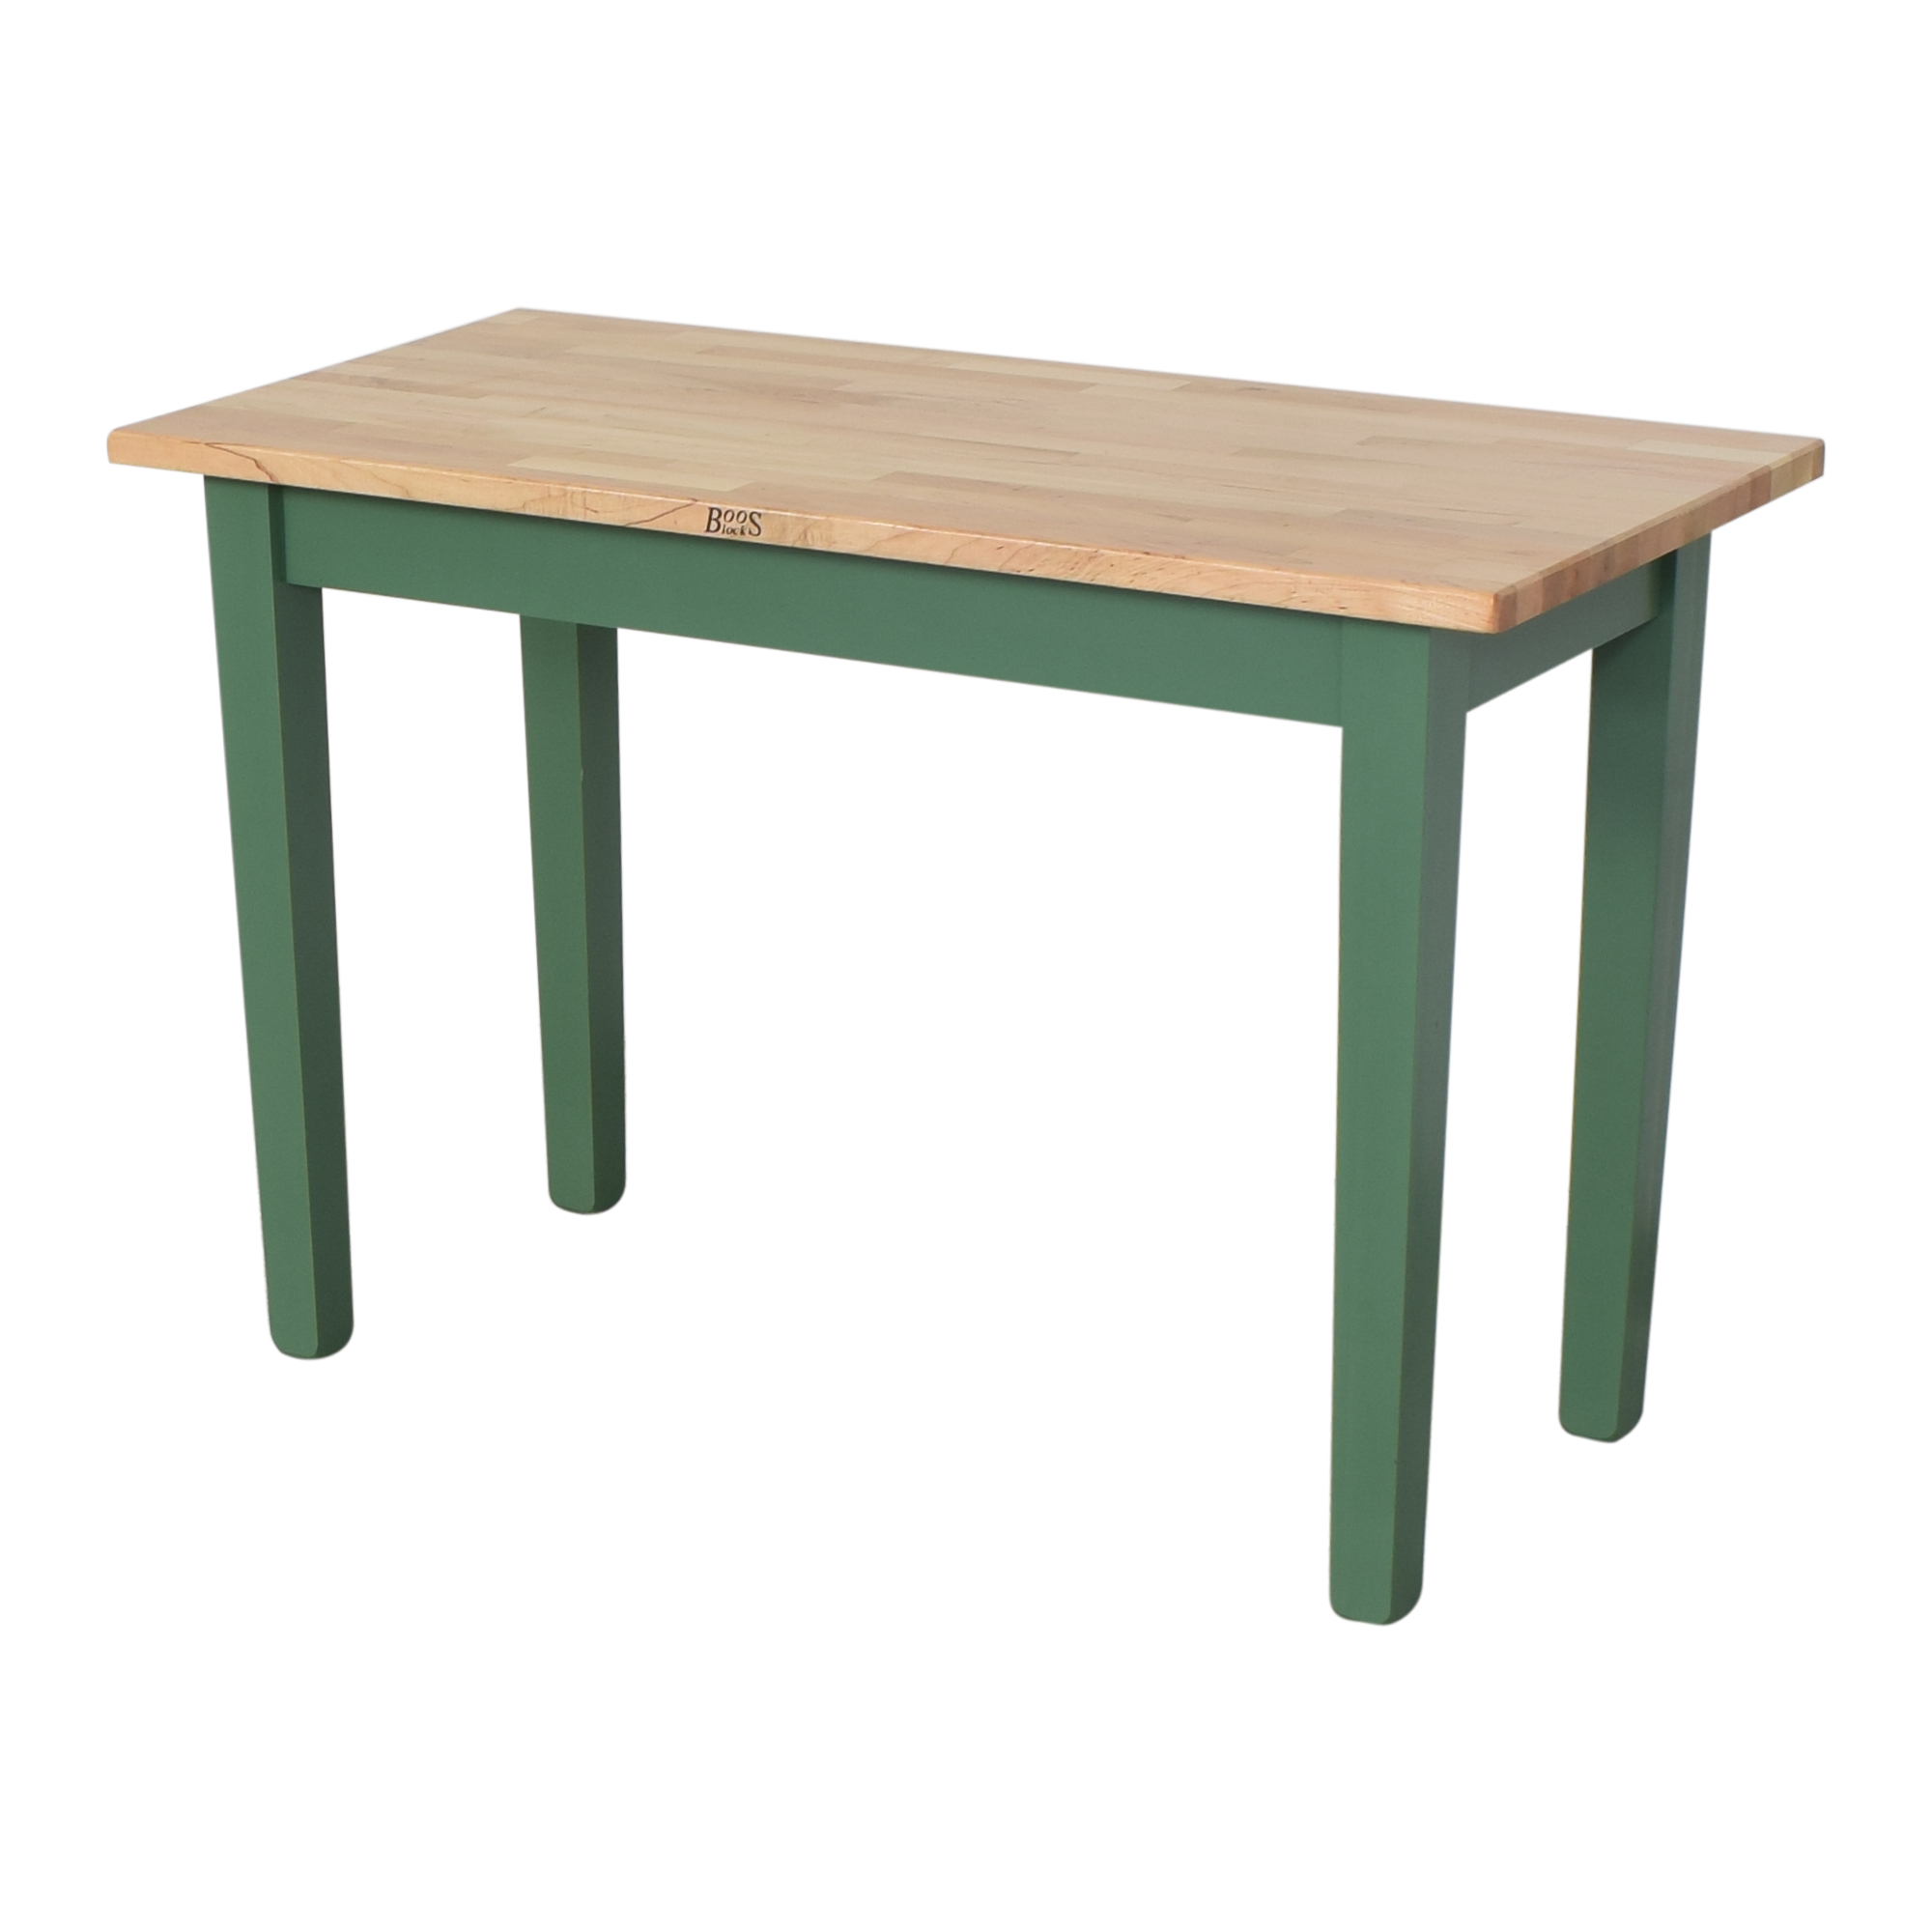 John Boos Classic Work Country Butcher Block Table / Dinner Tables